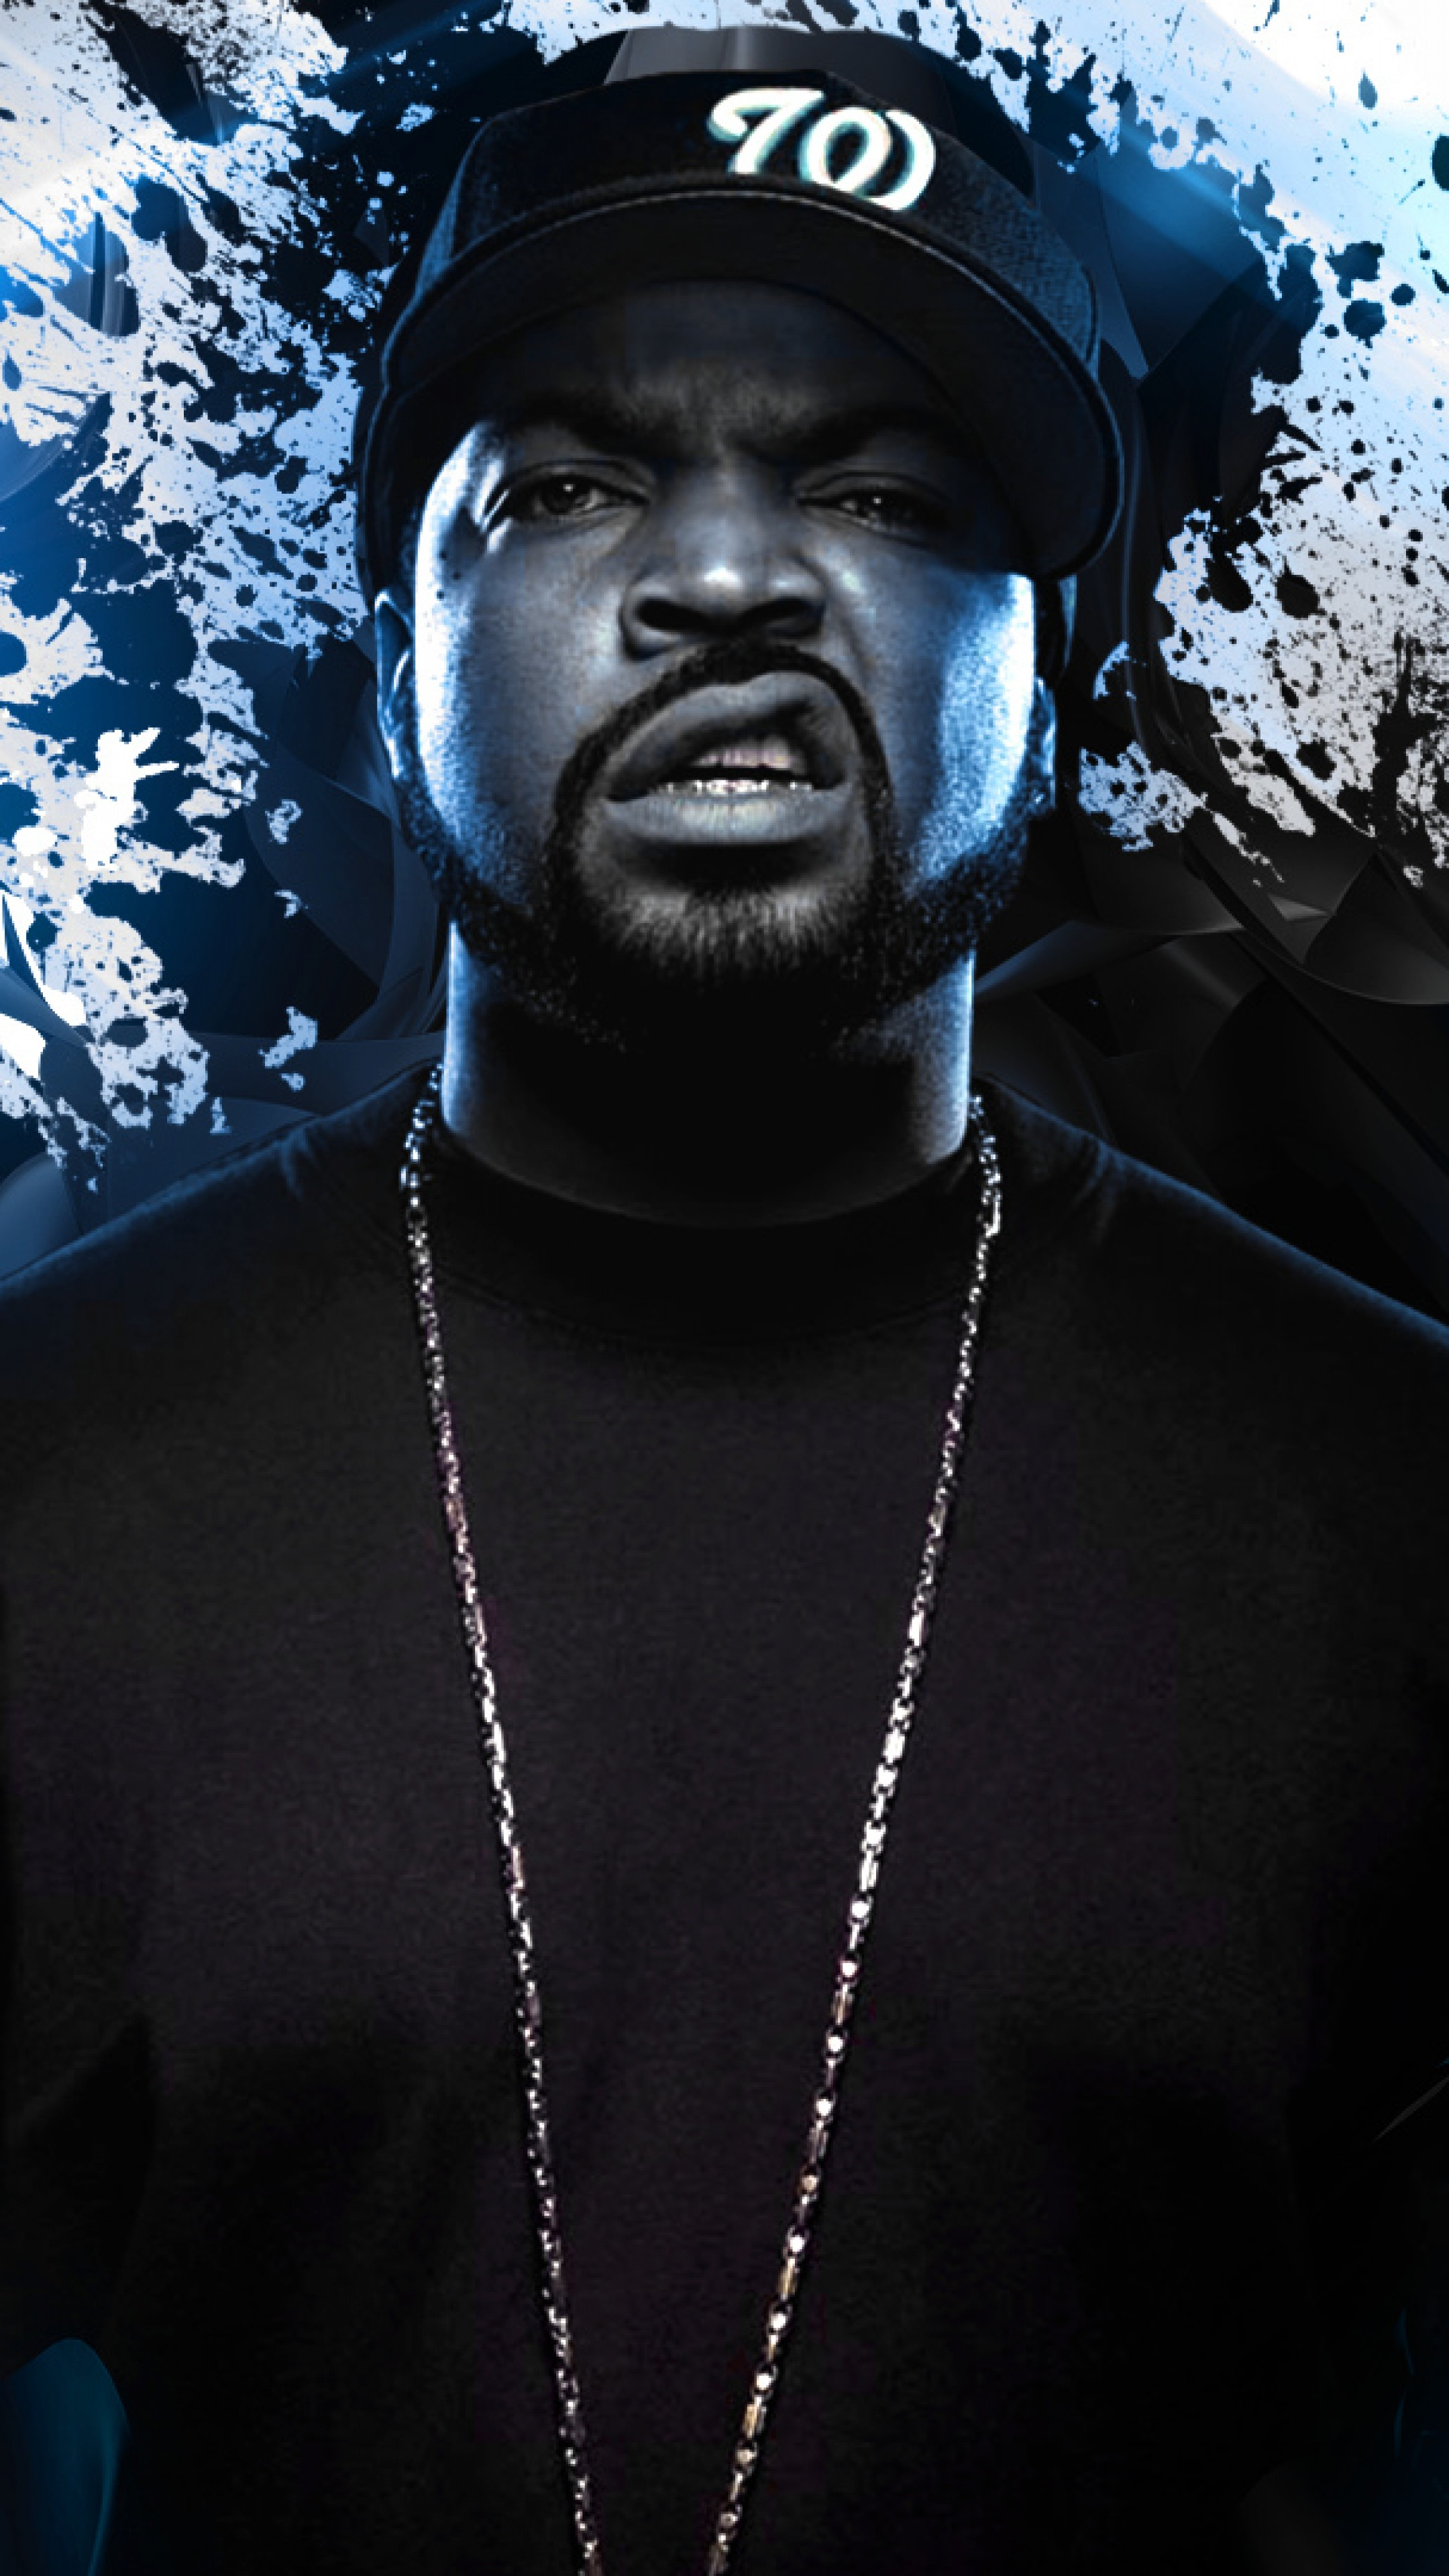 Wallpaper ice cube, rapper, musician, abstraction